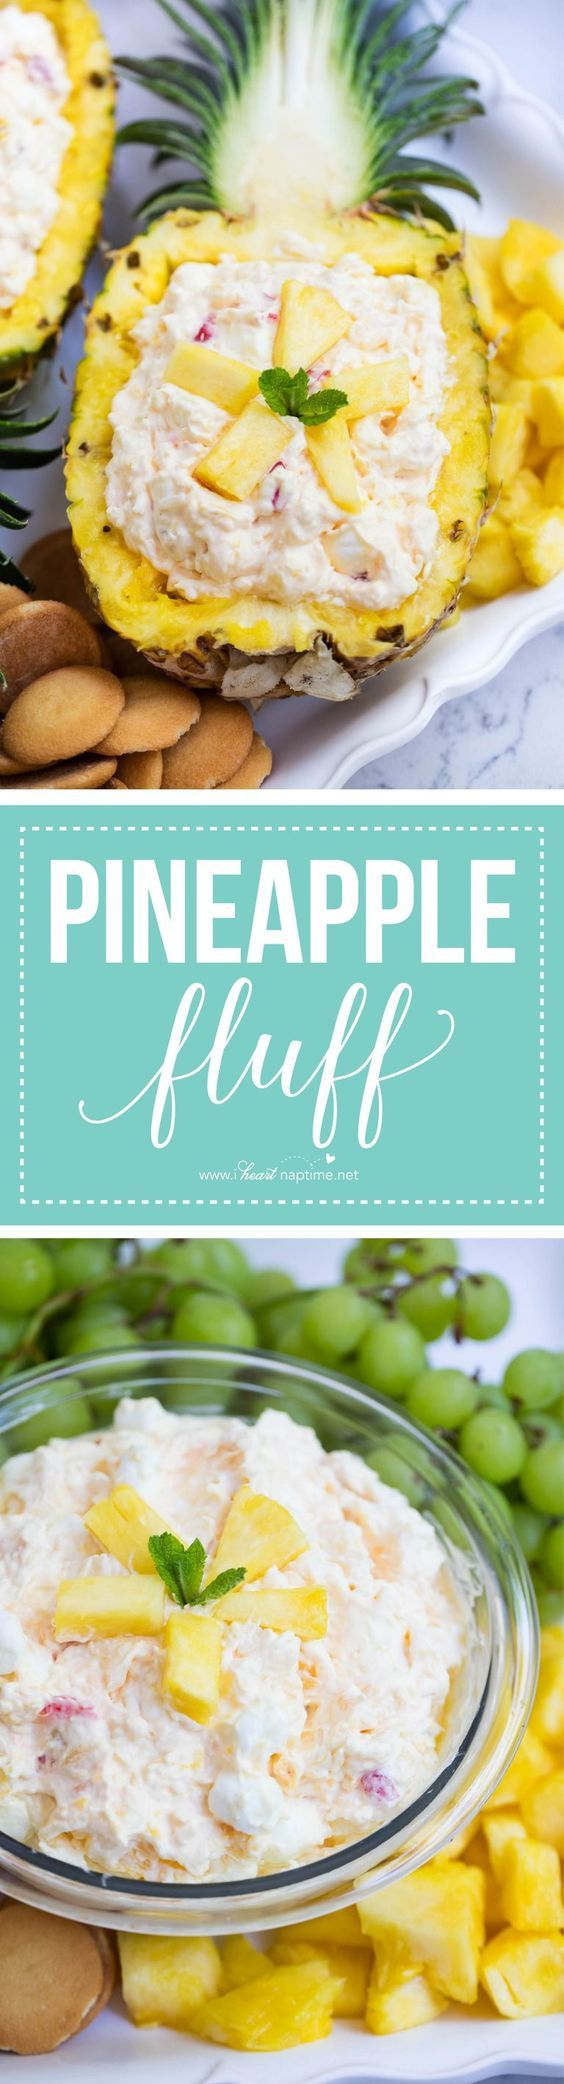 No bake pineapple fluff dessert made with only 5 simple ingredients. A quick and easy salad that is great for any occasion. So creamy and perfect for summer!